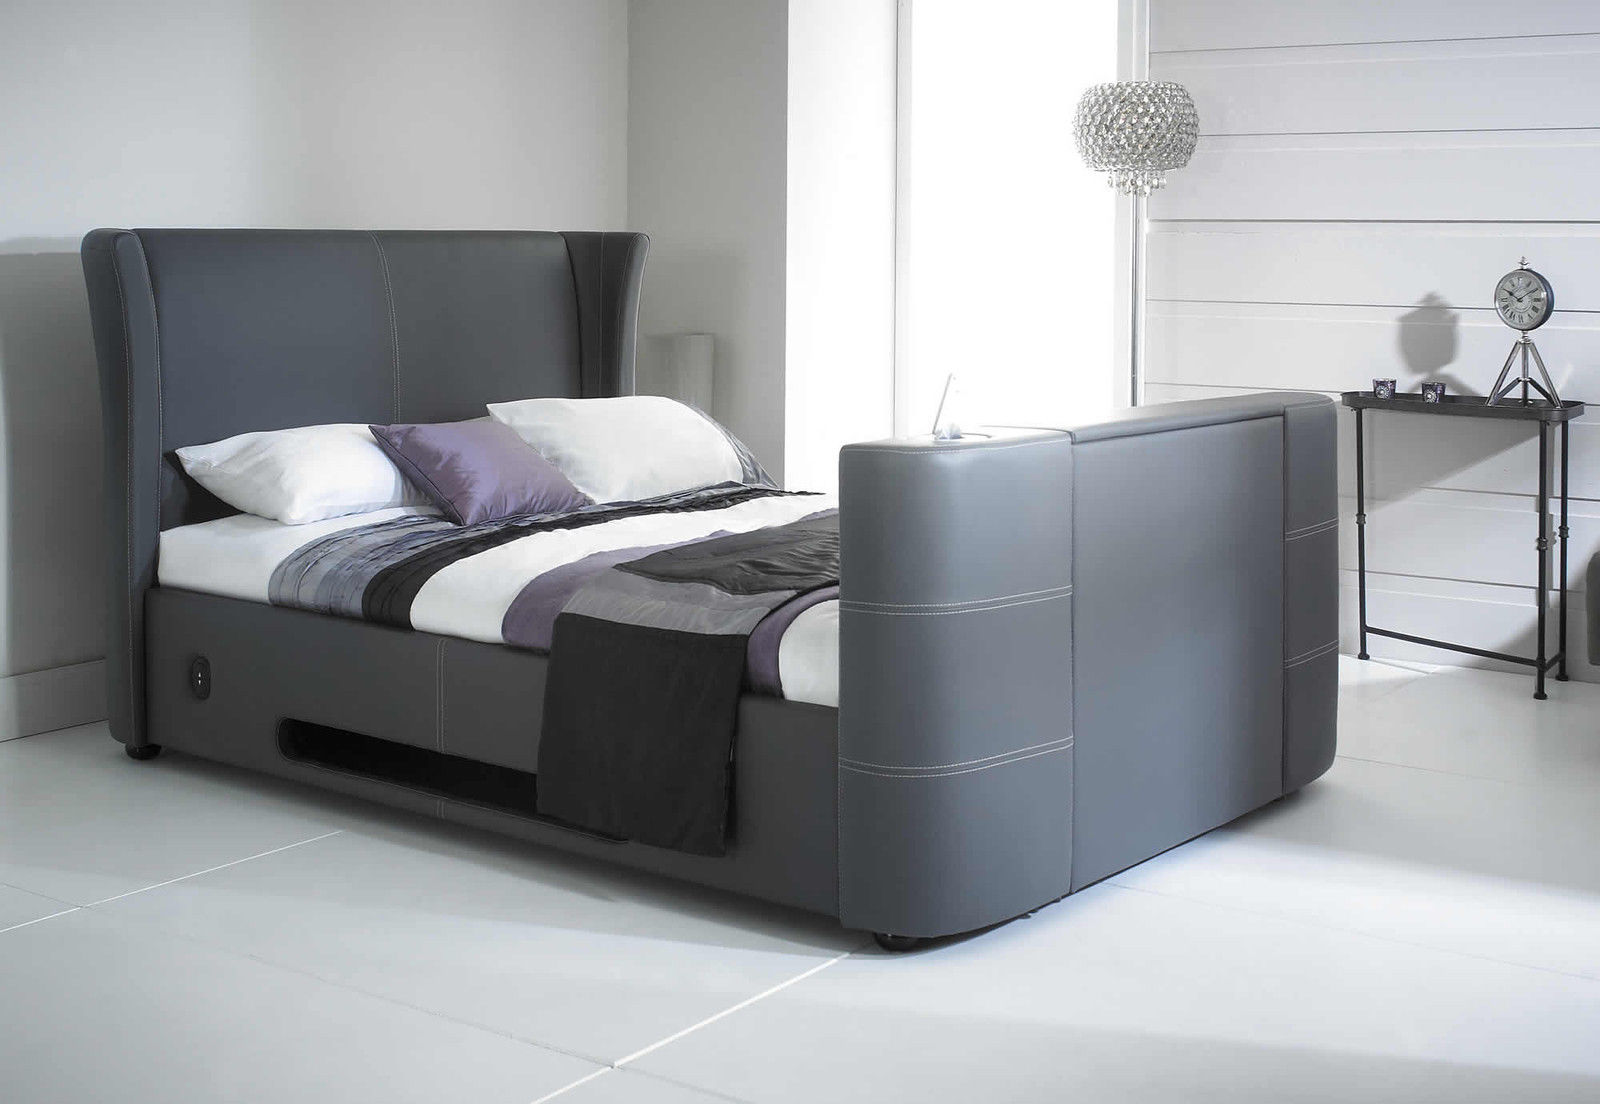 Elephant Tv Bed Grey I Pod Dock Bluetooth Speakers 5ft